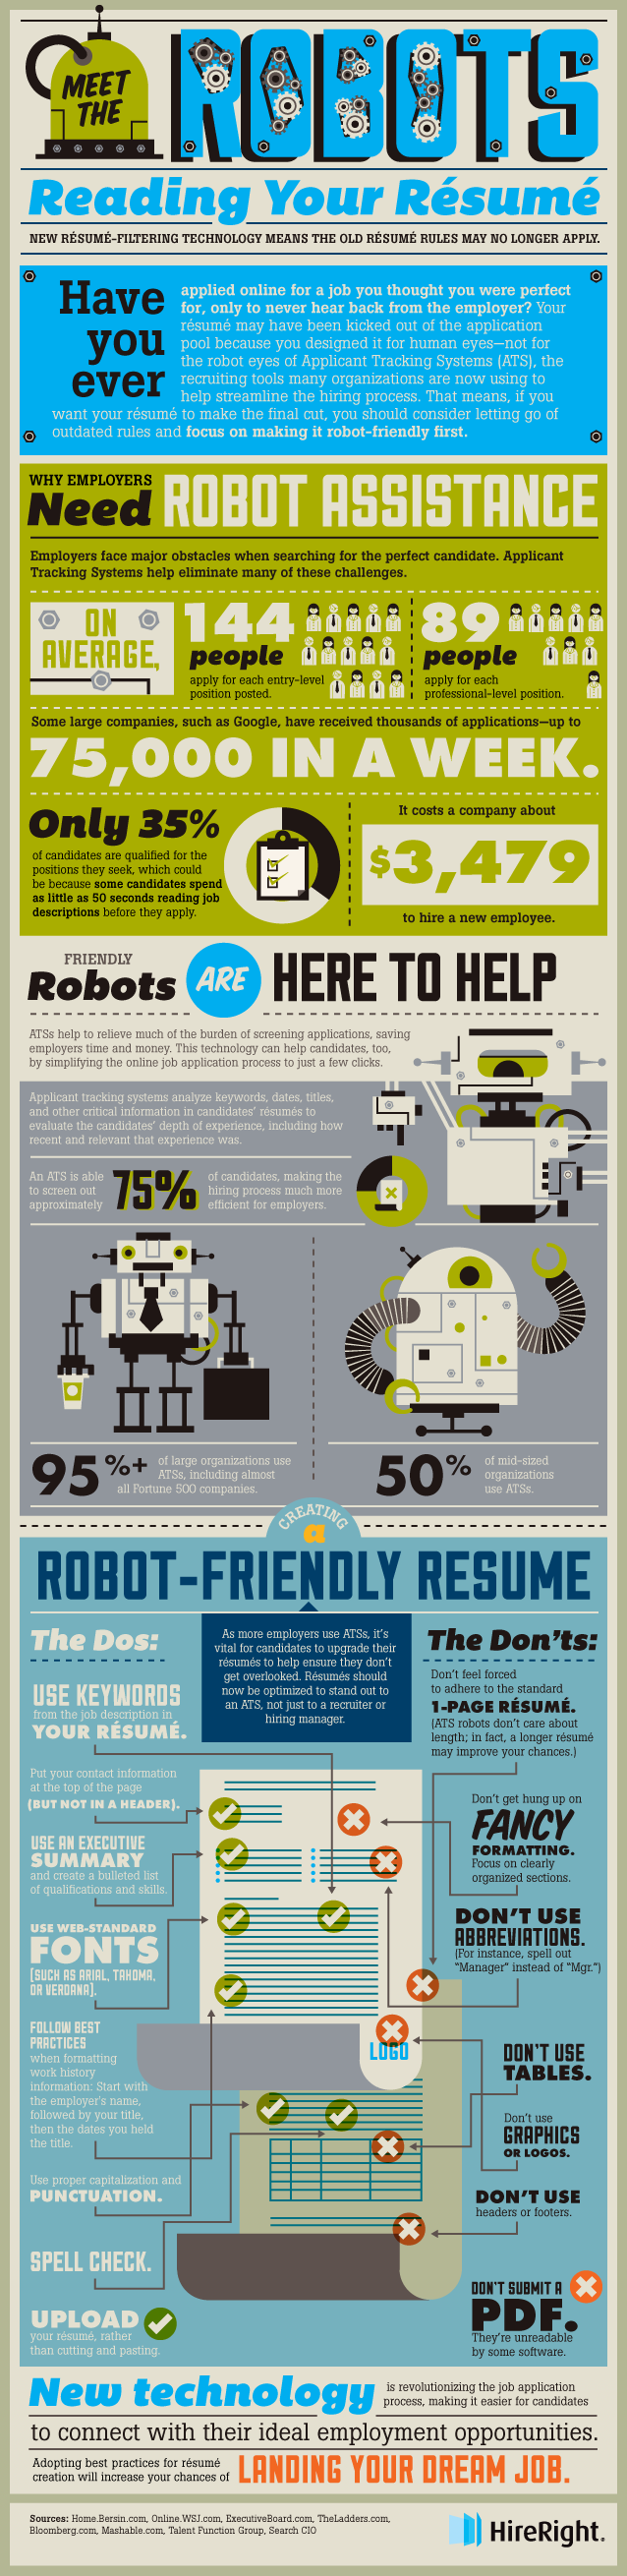 Meet the Robots Reading Your Resume Robot Infographic and Online